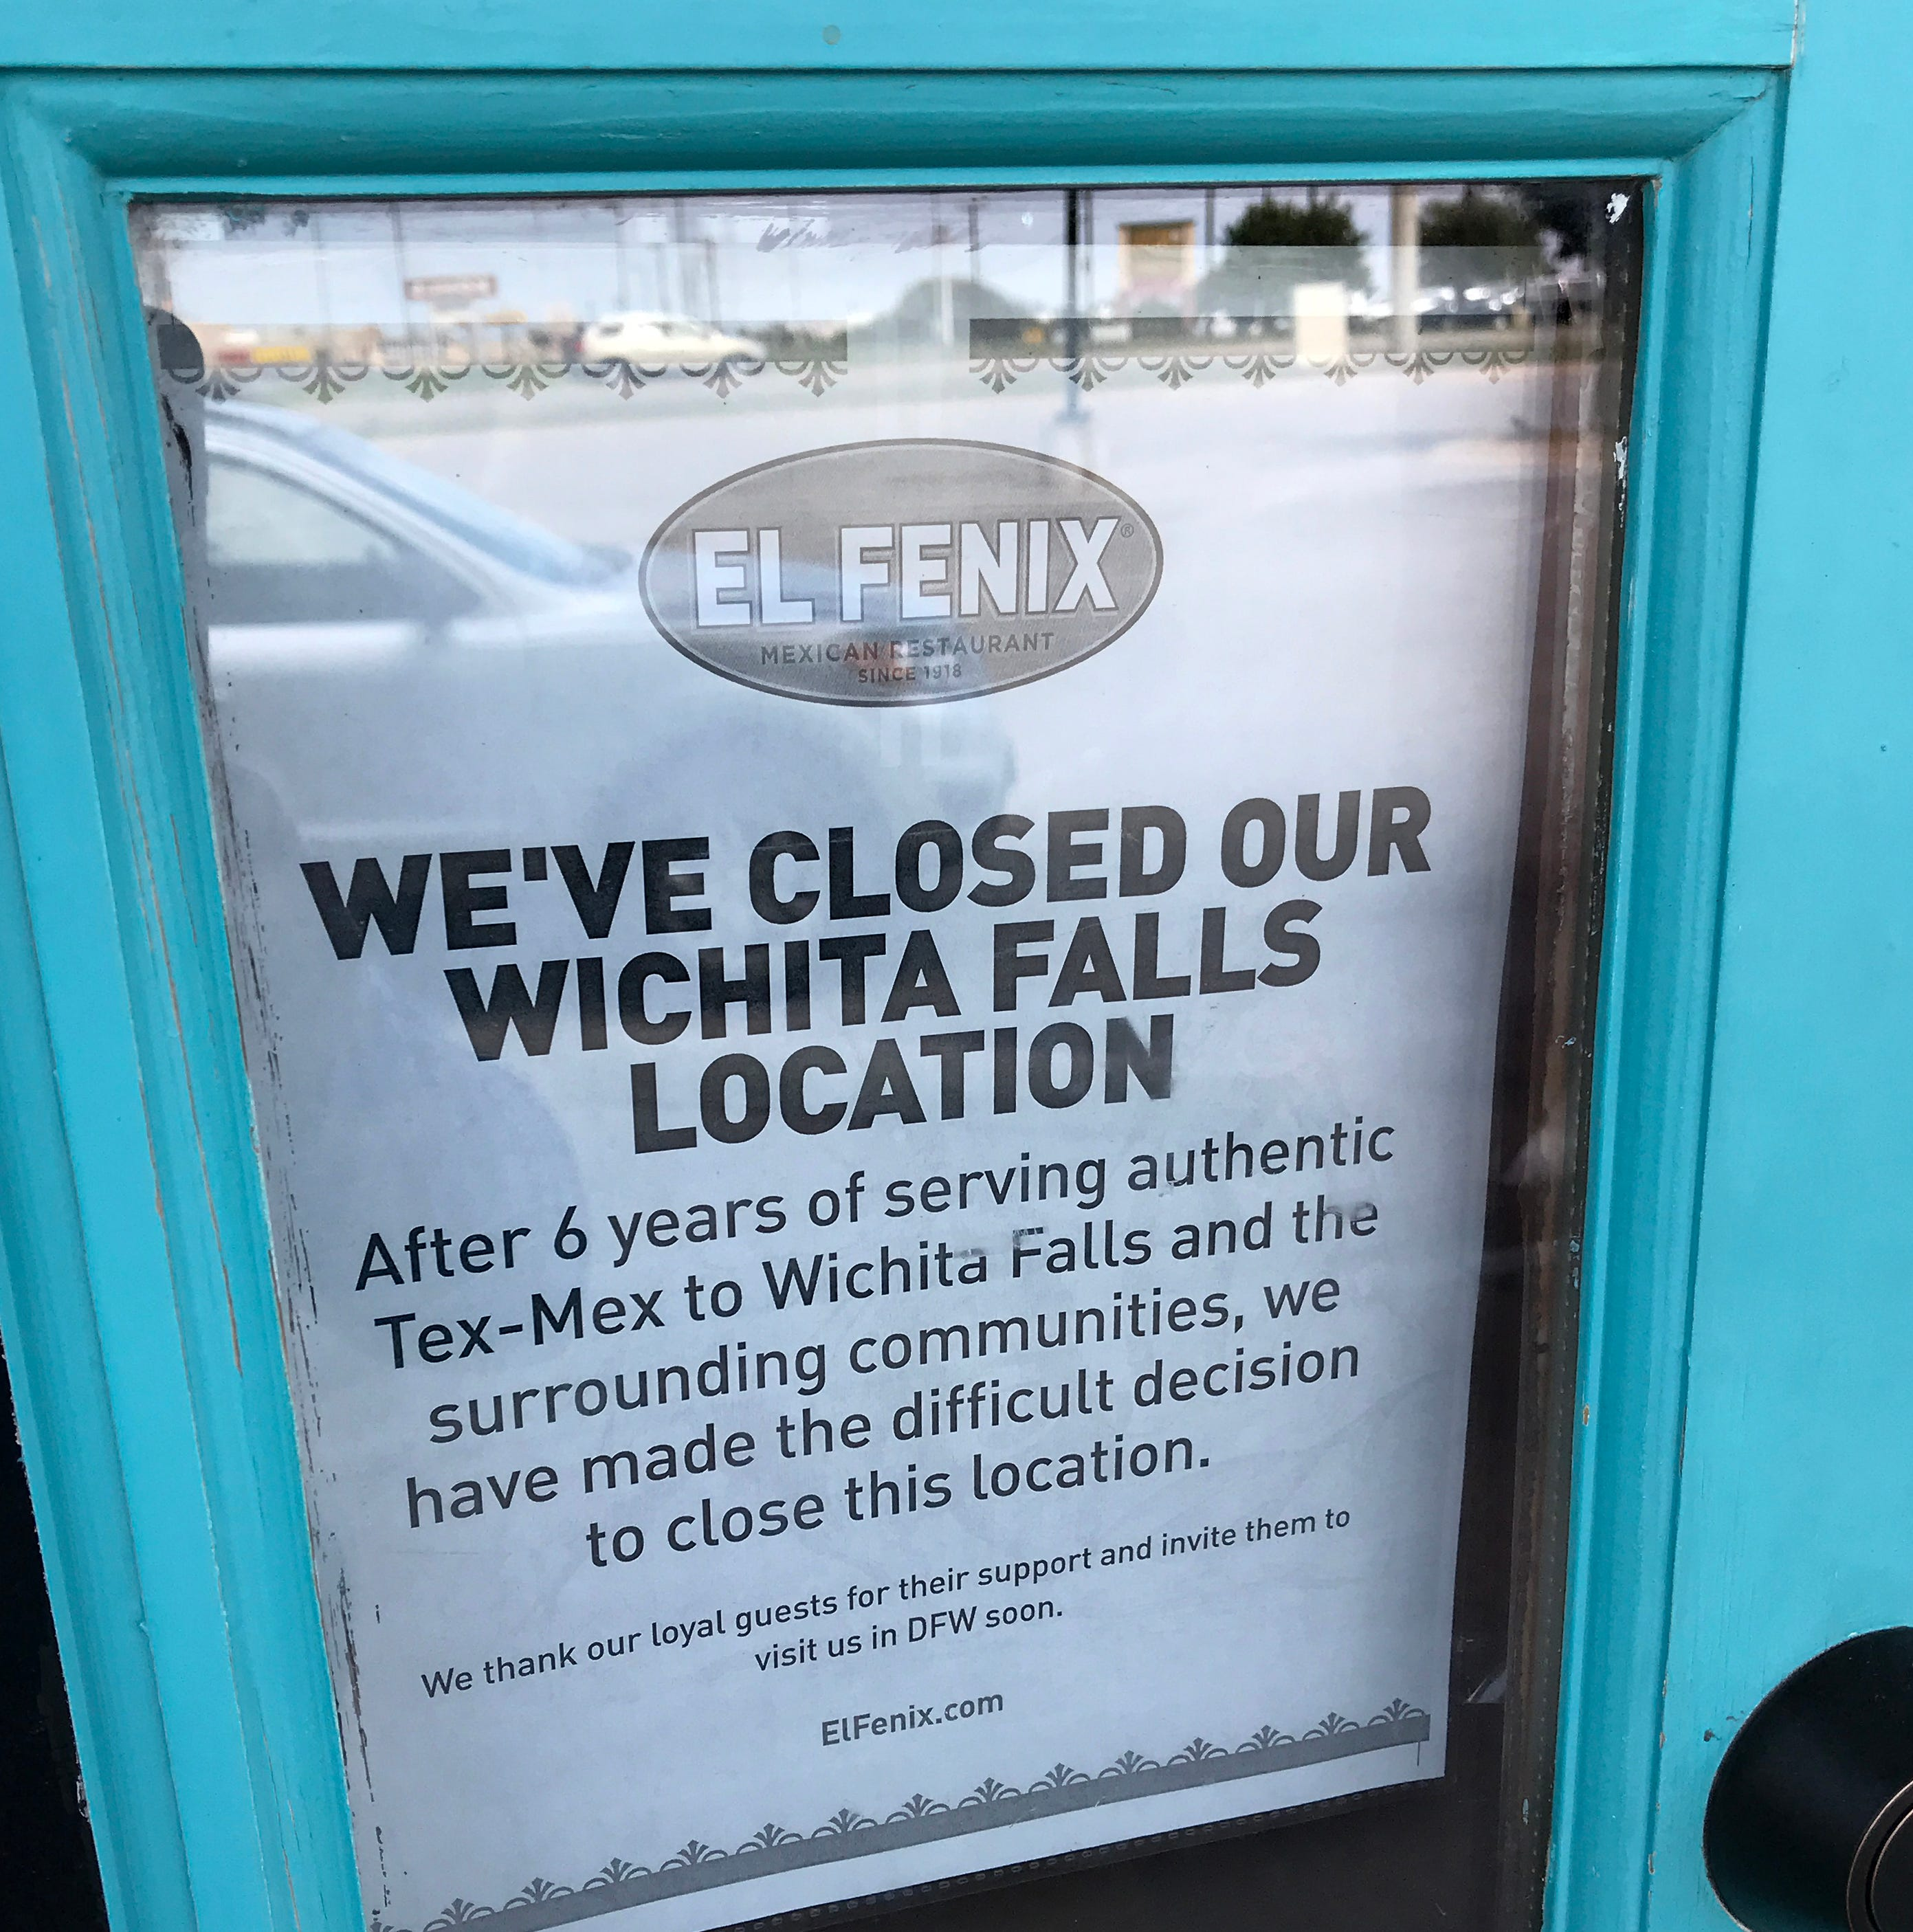 El Fenix closes Wichita Falls restaurant suddenly over weekend